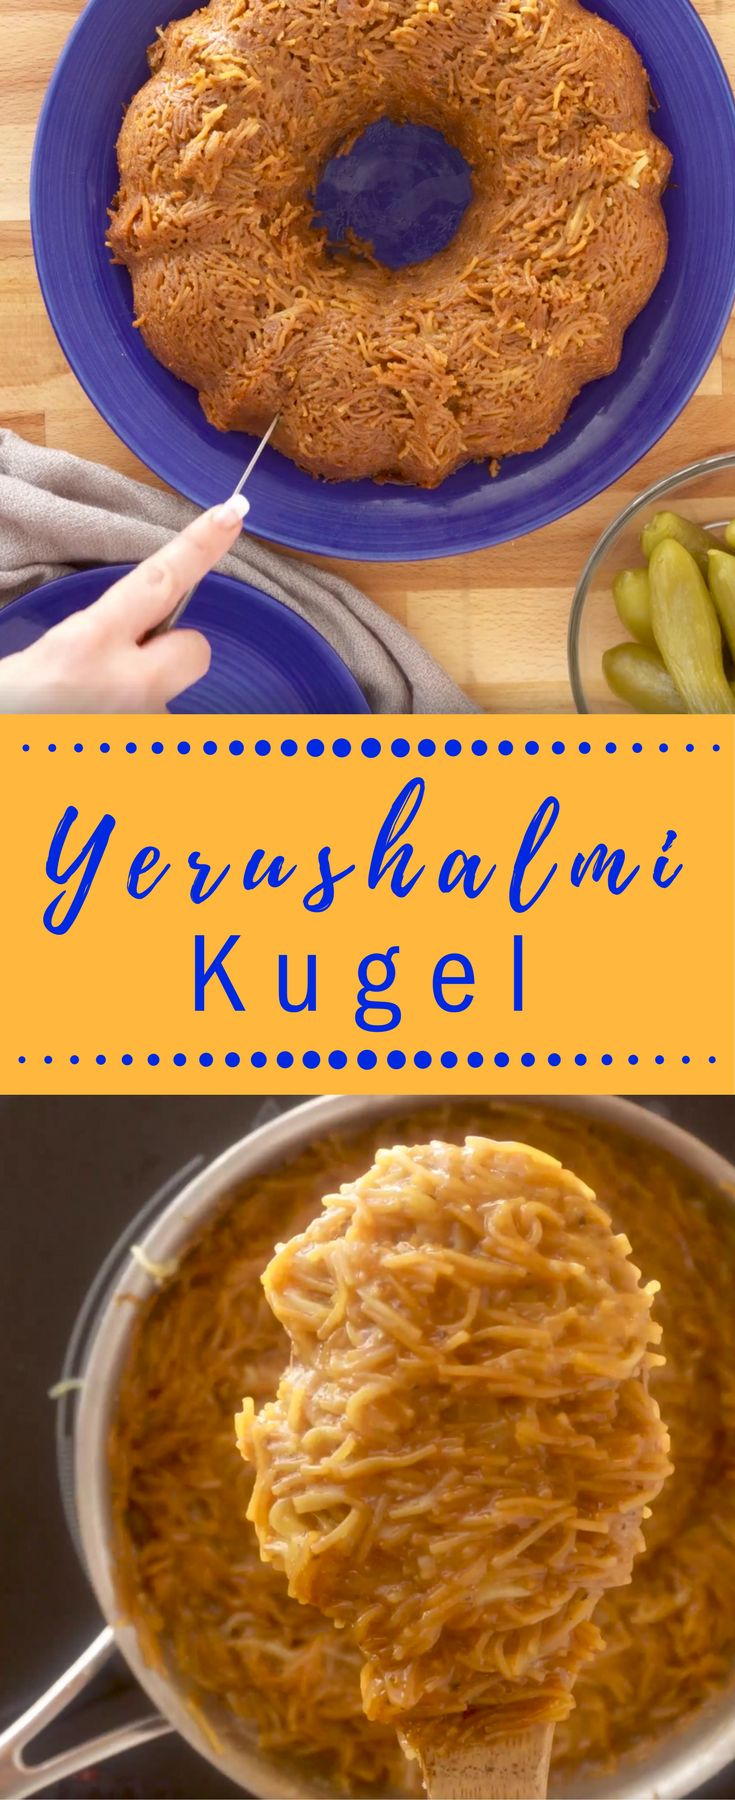 Yerushalmi kugel gets its name from the city where it is most popular,  Jerusalem.  You cannot walk in the Machaneh Yehuda Shuk (market) on a  Thursday or Friday without seeing humongous pots of this sweet and  peppery noodle kugel and there is nothing quite like it. Check out our recipe on how to make this delicious Yerushalmi Kugel!